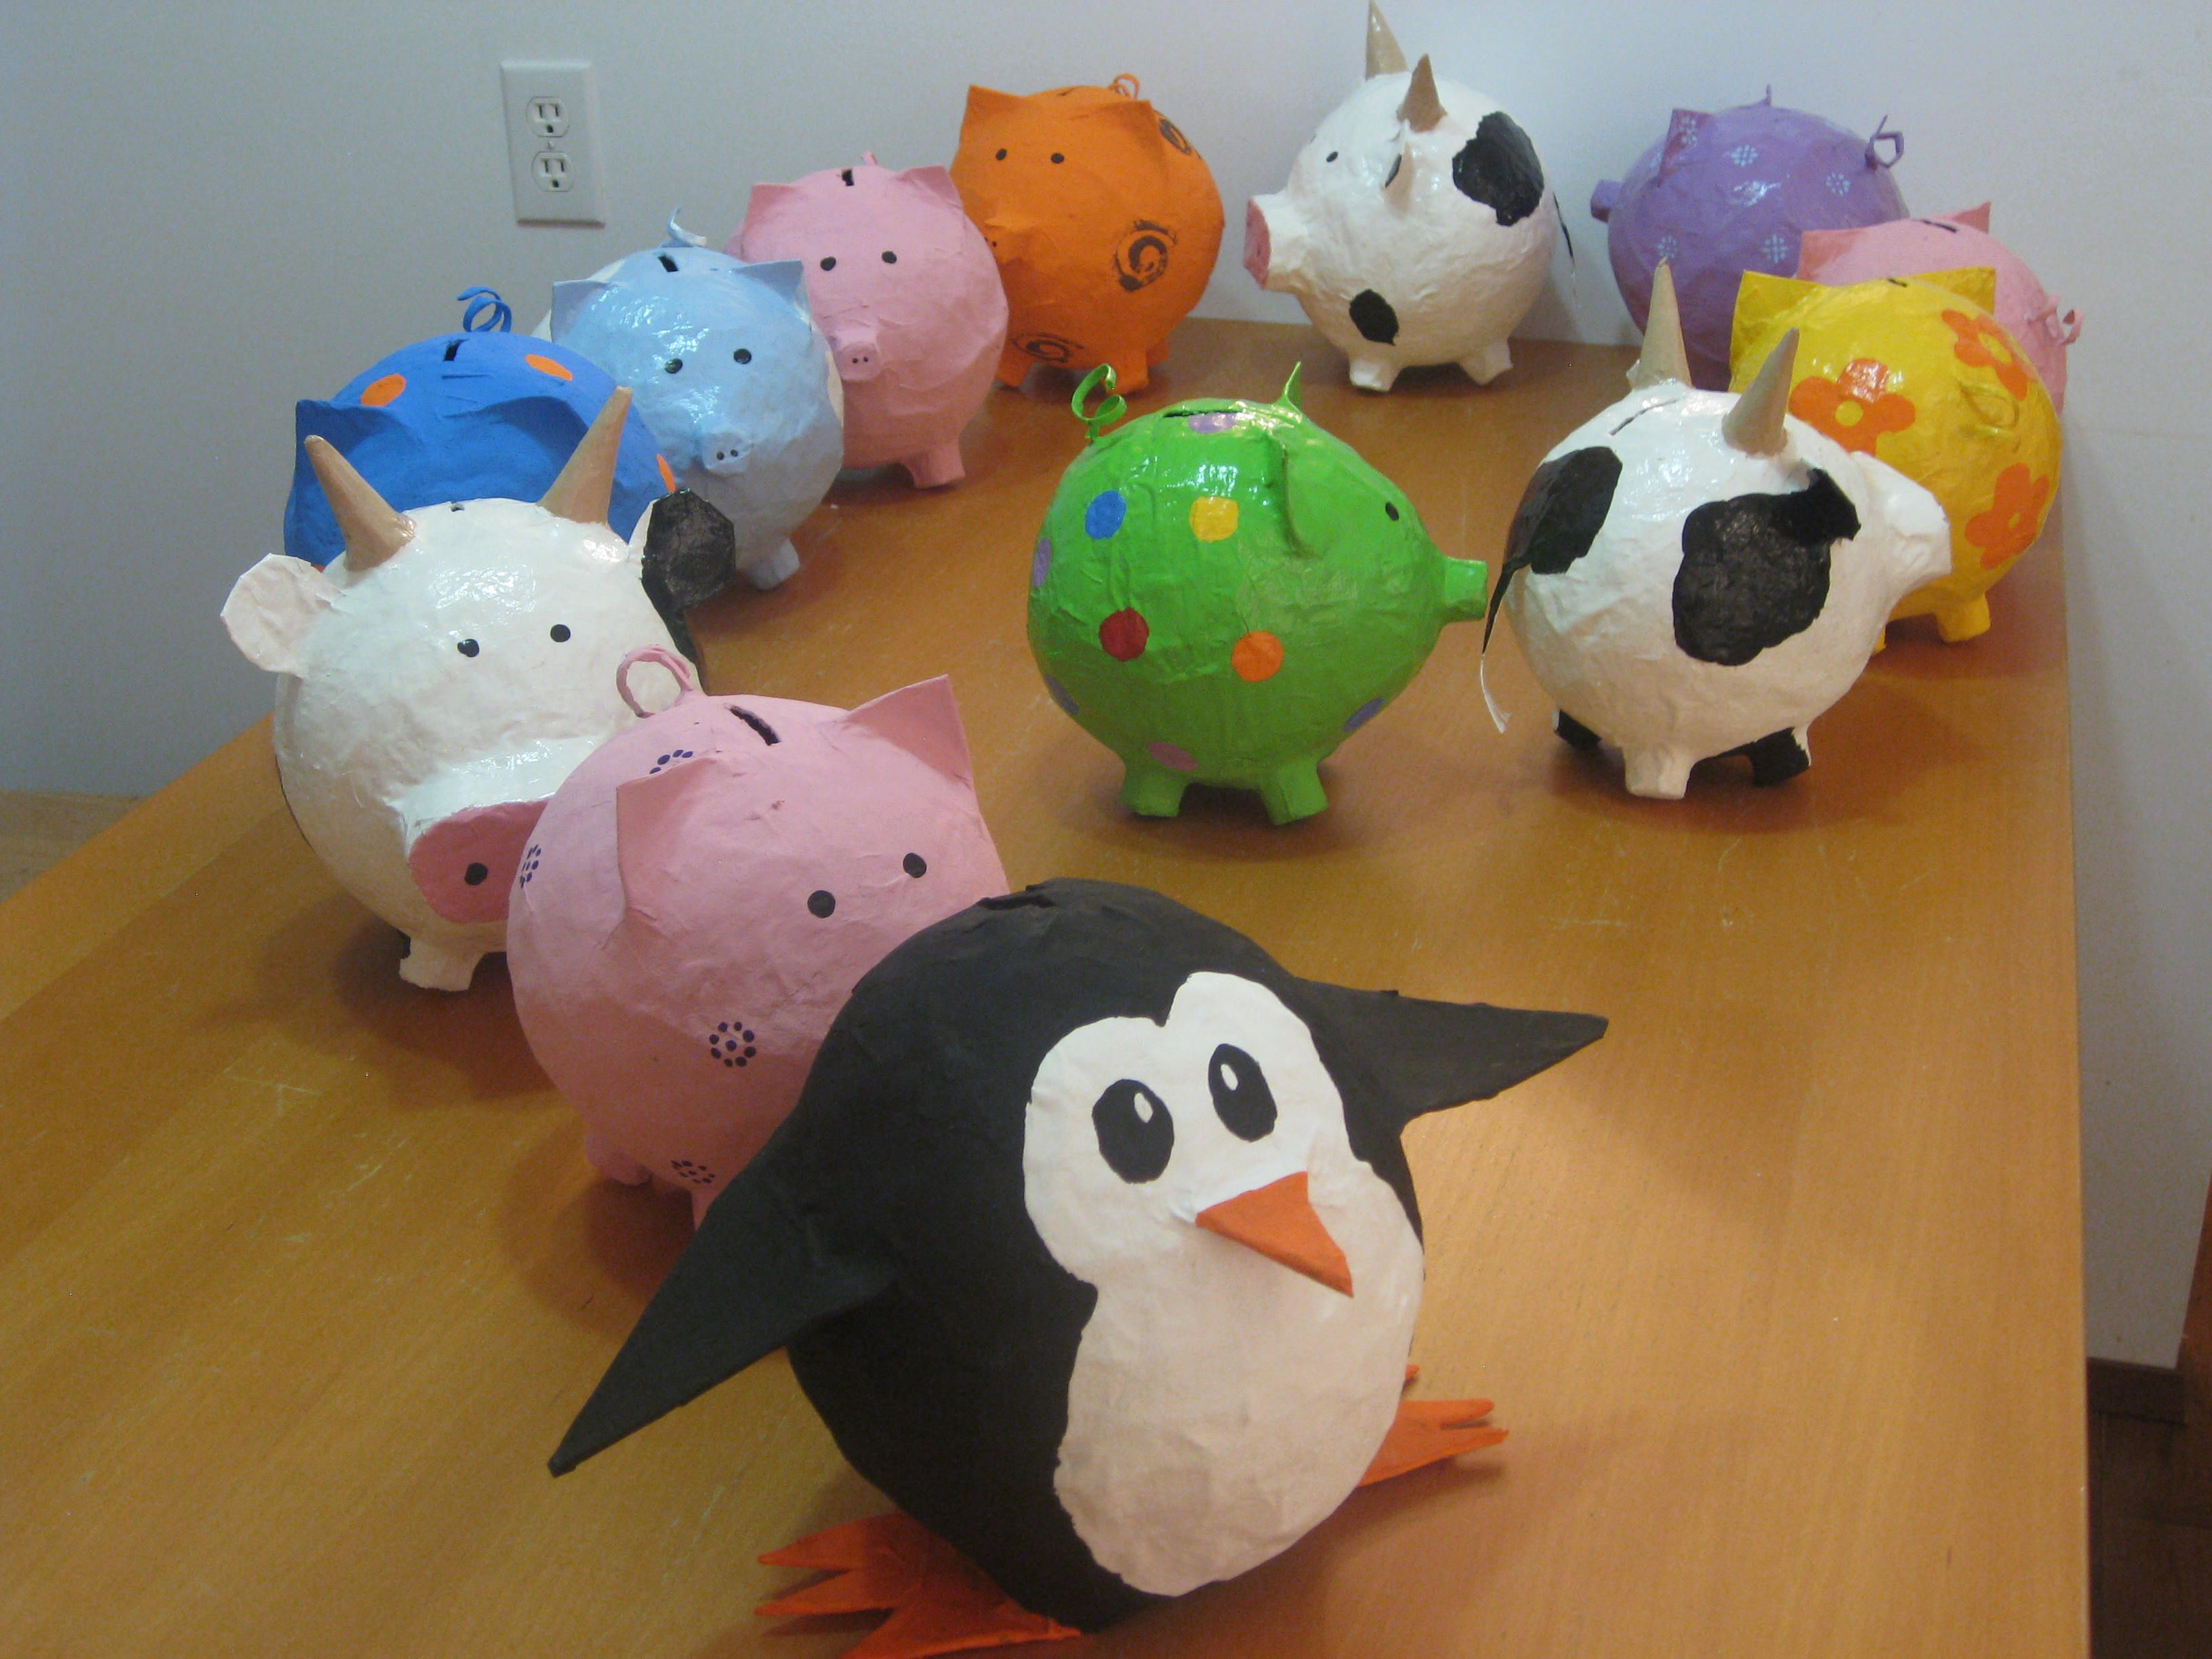 2011 follow that bird paper mache piggy bank army